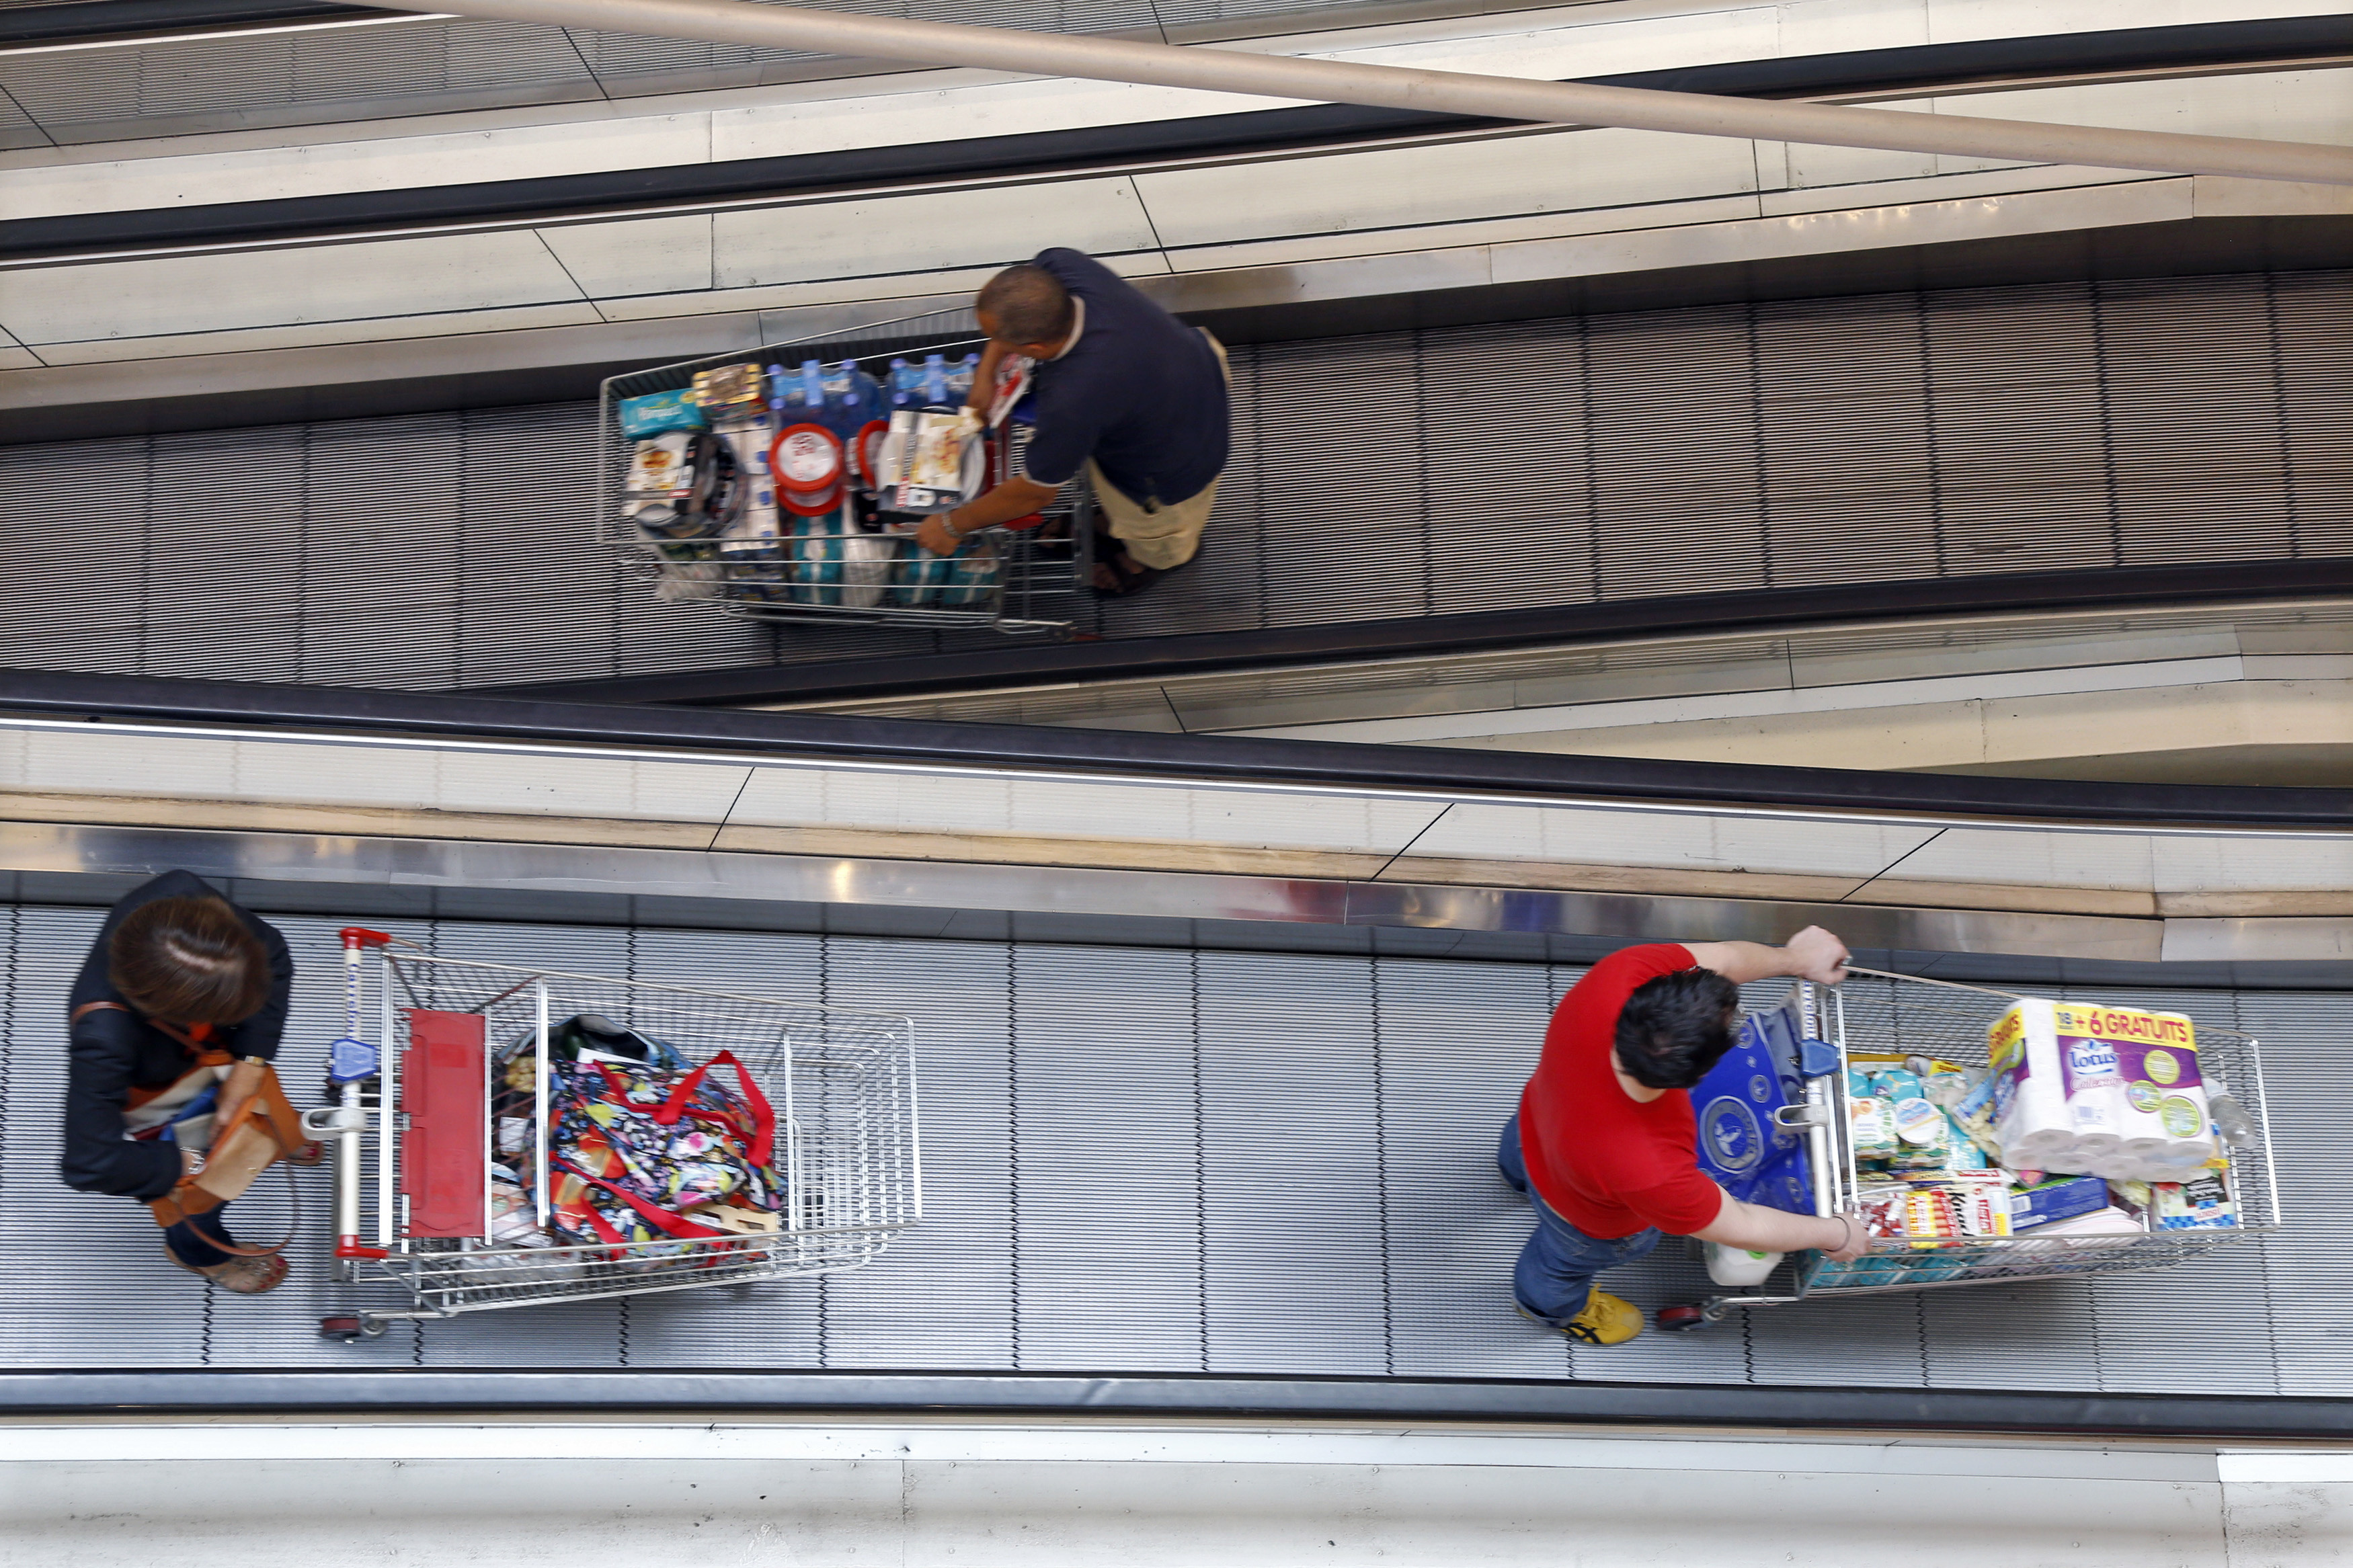 Customers push shopping trolleys on an escalator